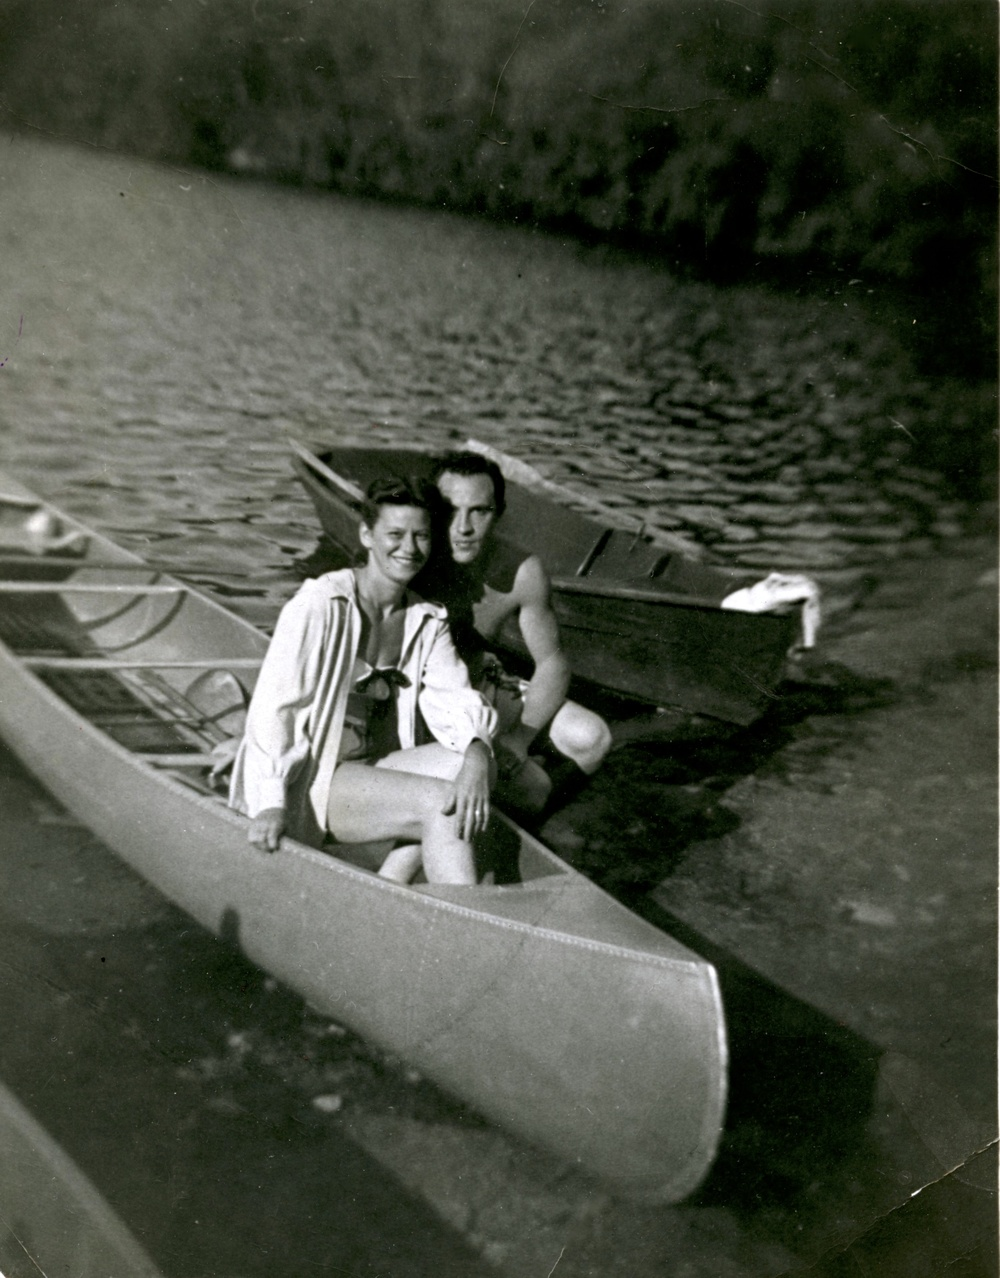 The Author's Grandparents on their honeymoon at the Nevele